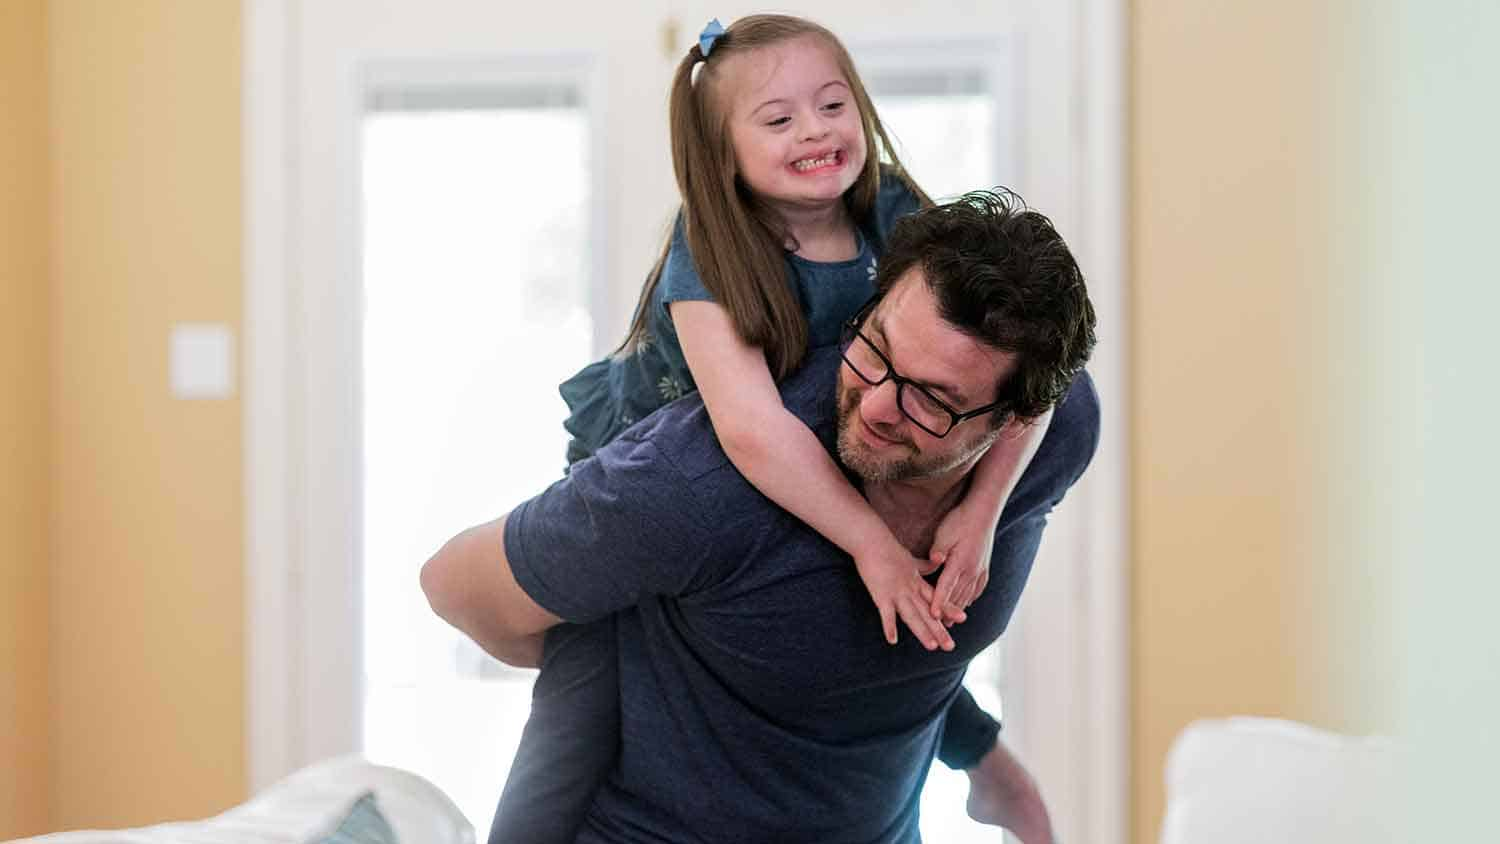 A young girl with Down Syndrome is given a piggy back by a man, both are laughing.